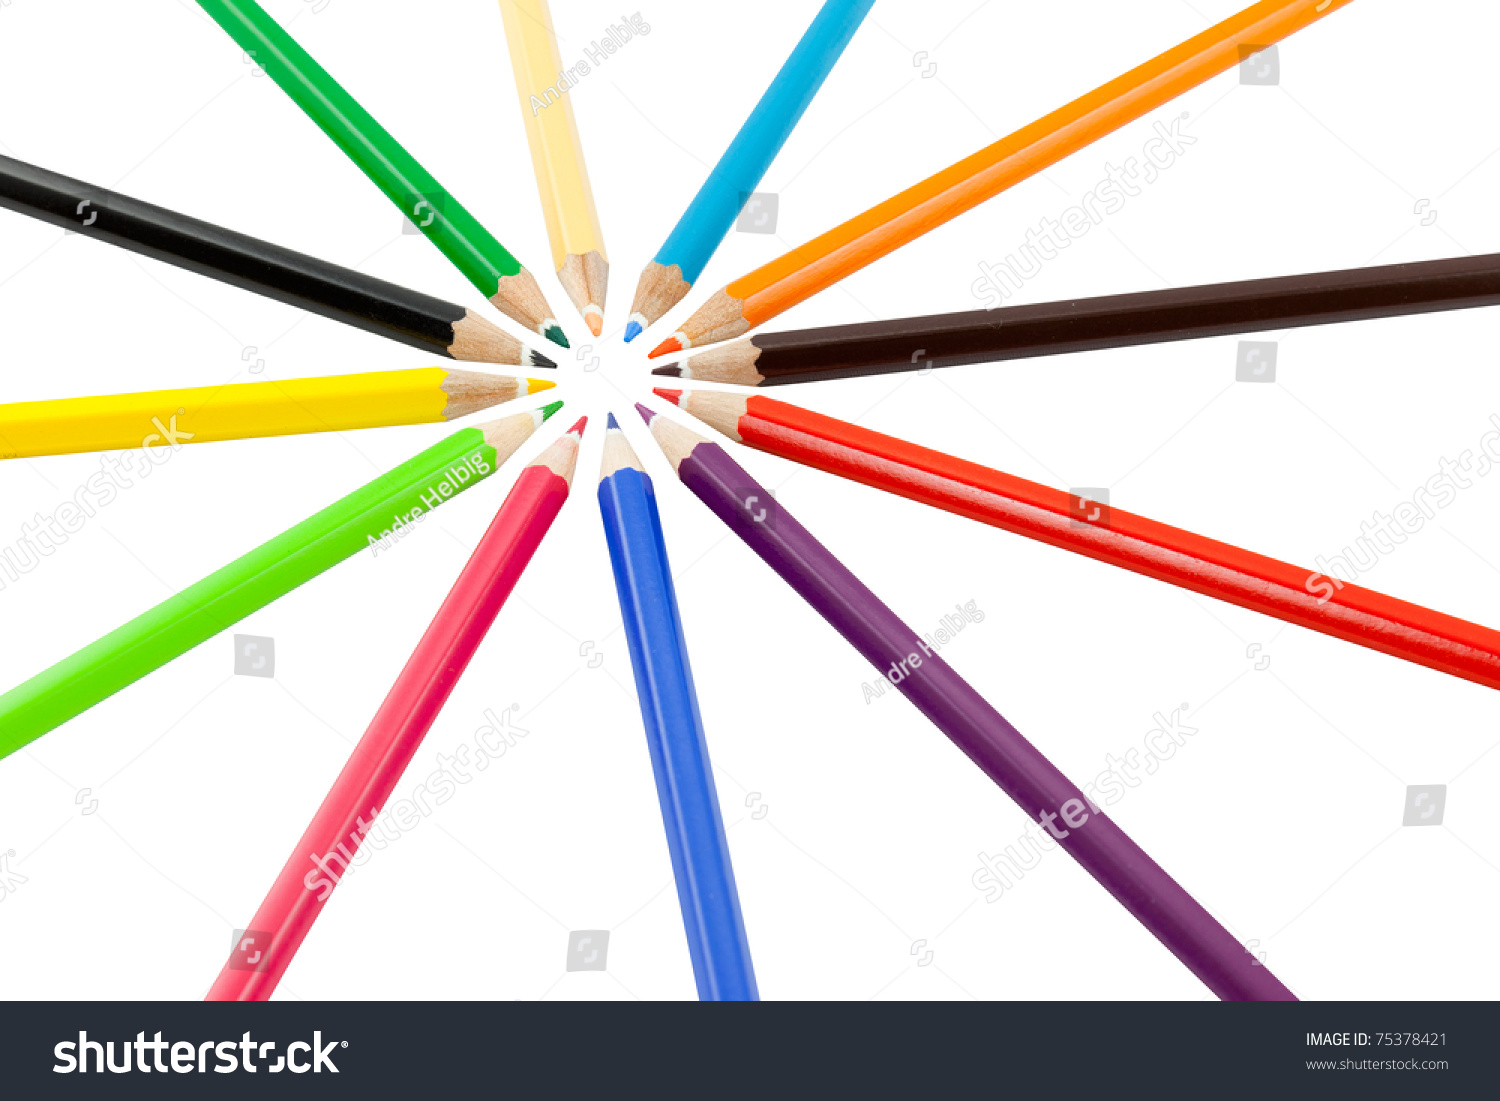 Crayon Colored Circle : Colored pencil ring round circle of colorful crayon